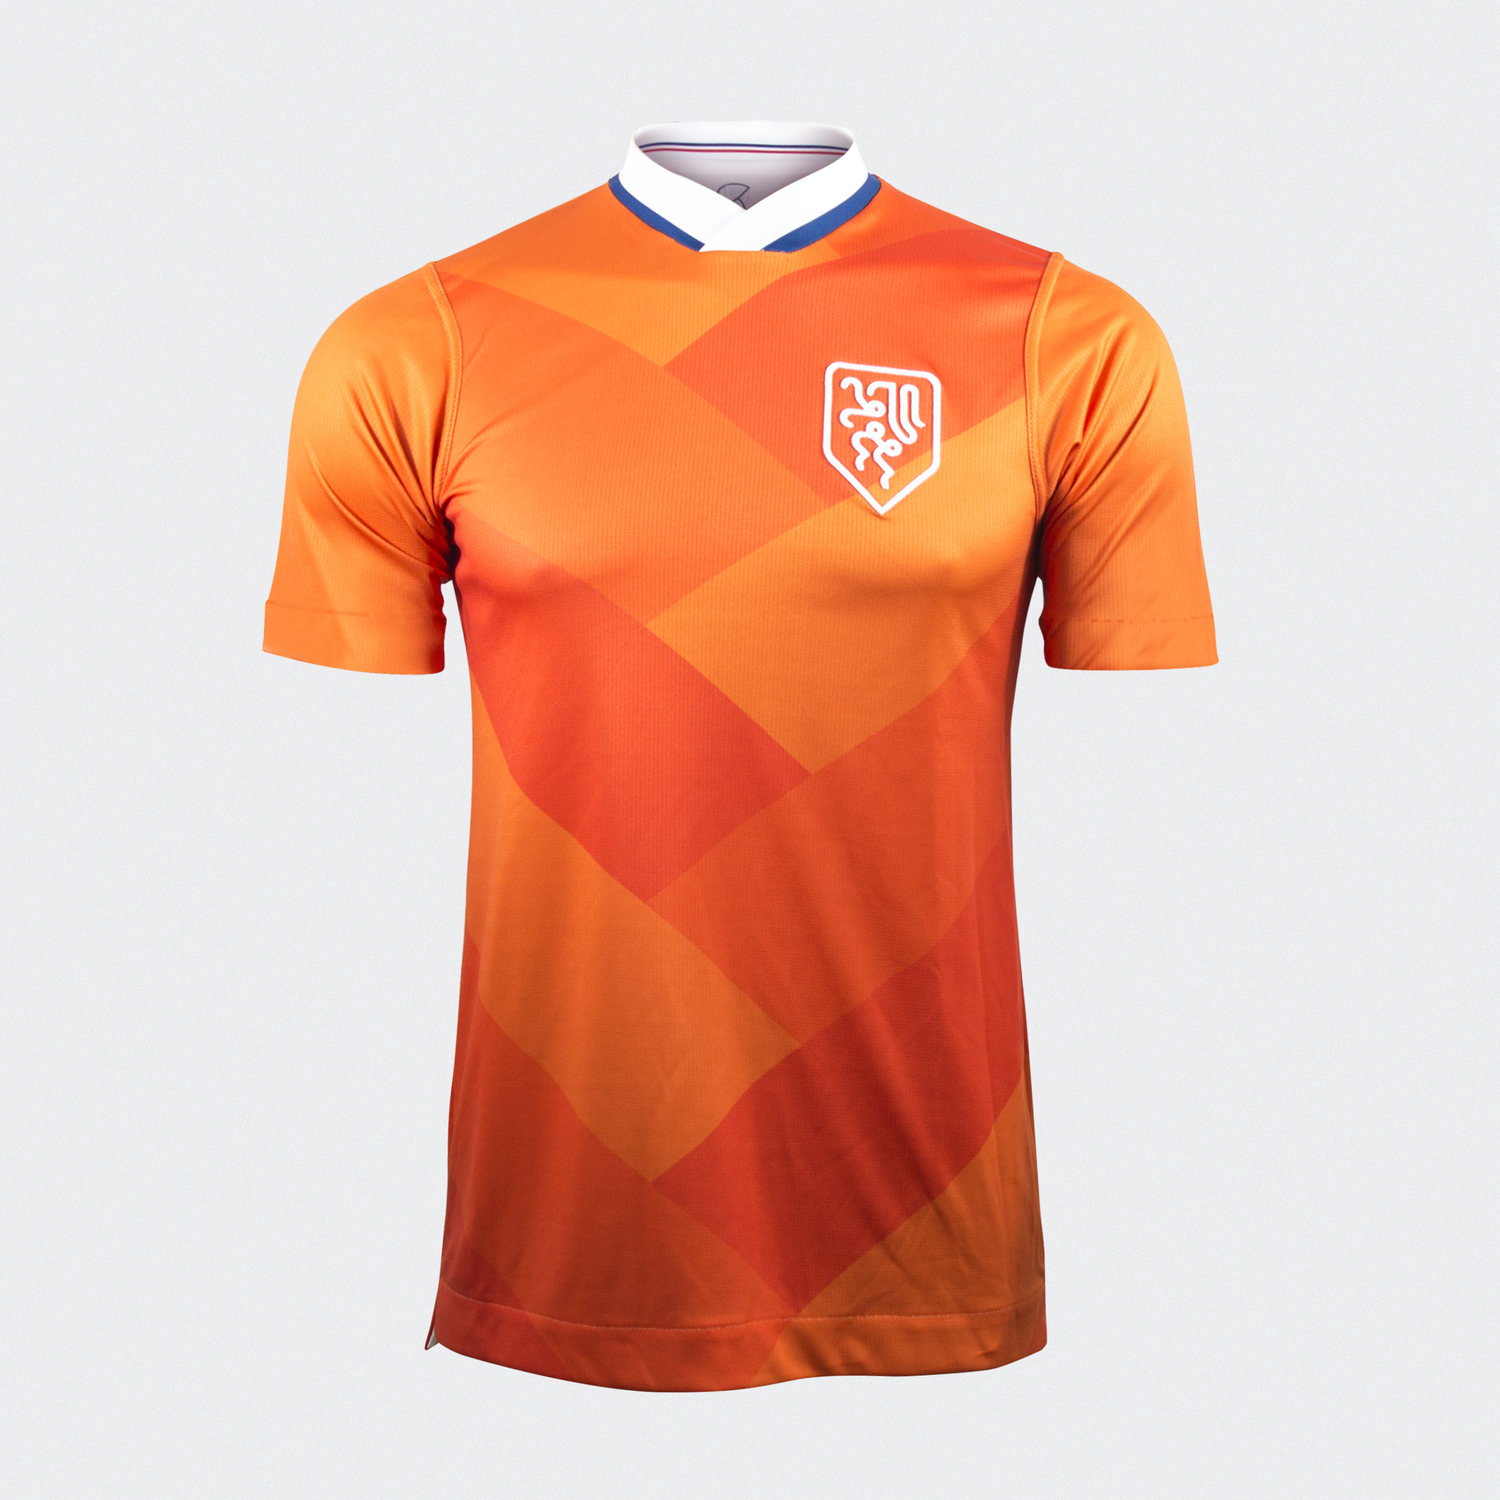 4584601e5 Dutch Orange Lion Jersey - Sold Out - FootballCulture